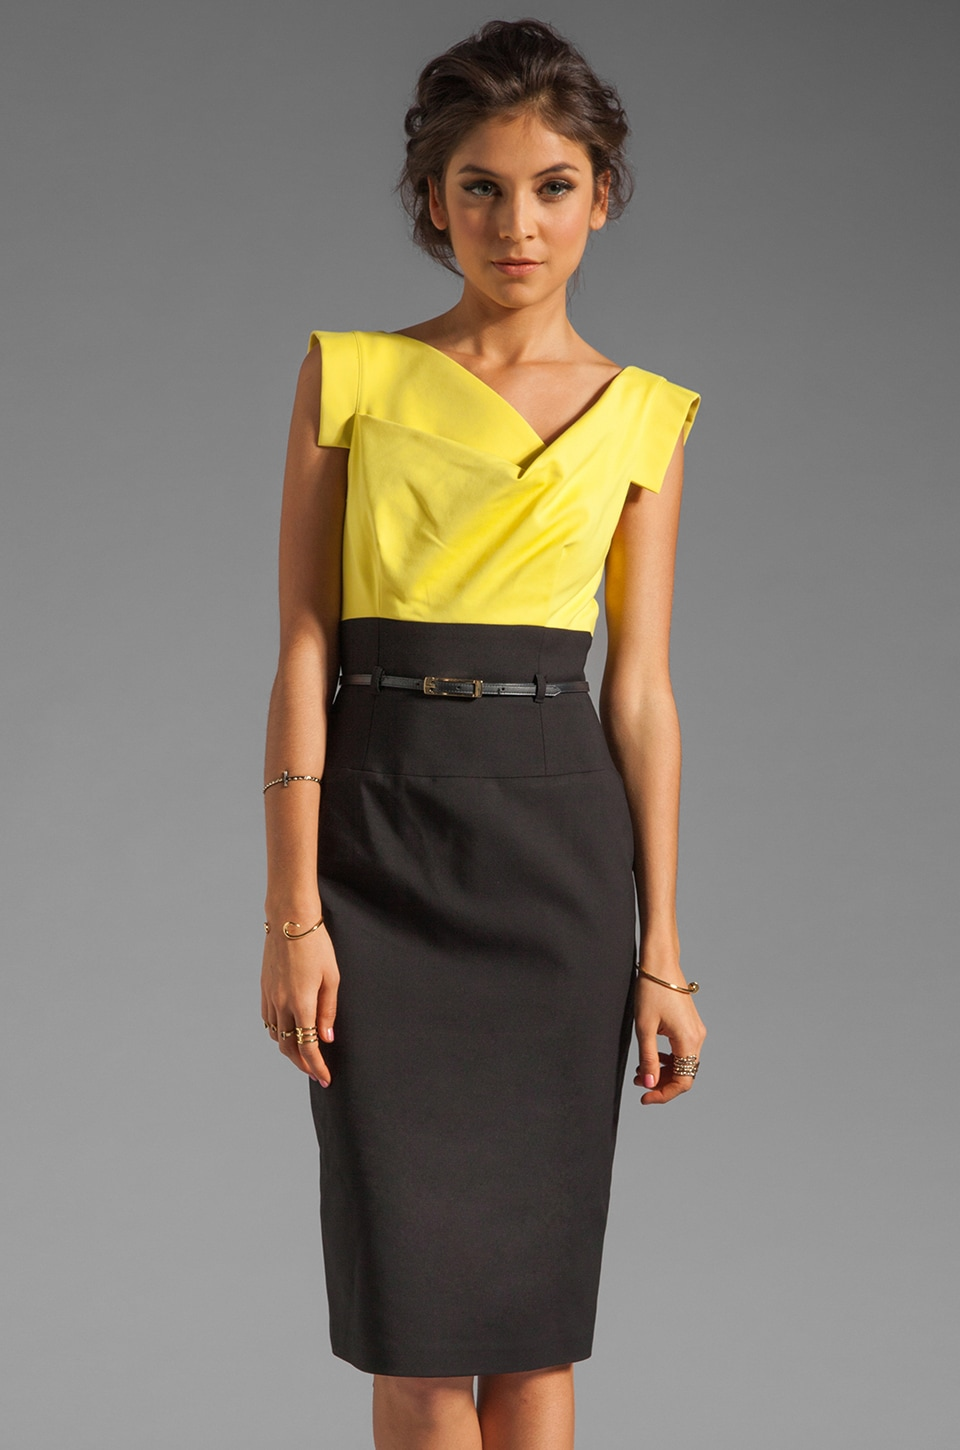 Black Halo Jackie O Two Tone Dress in Limonata/Black